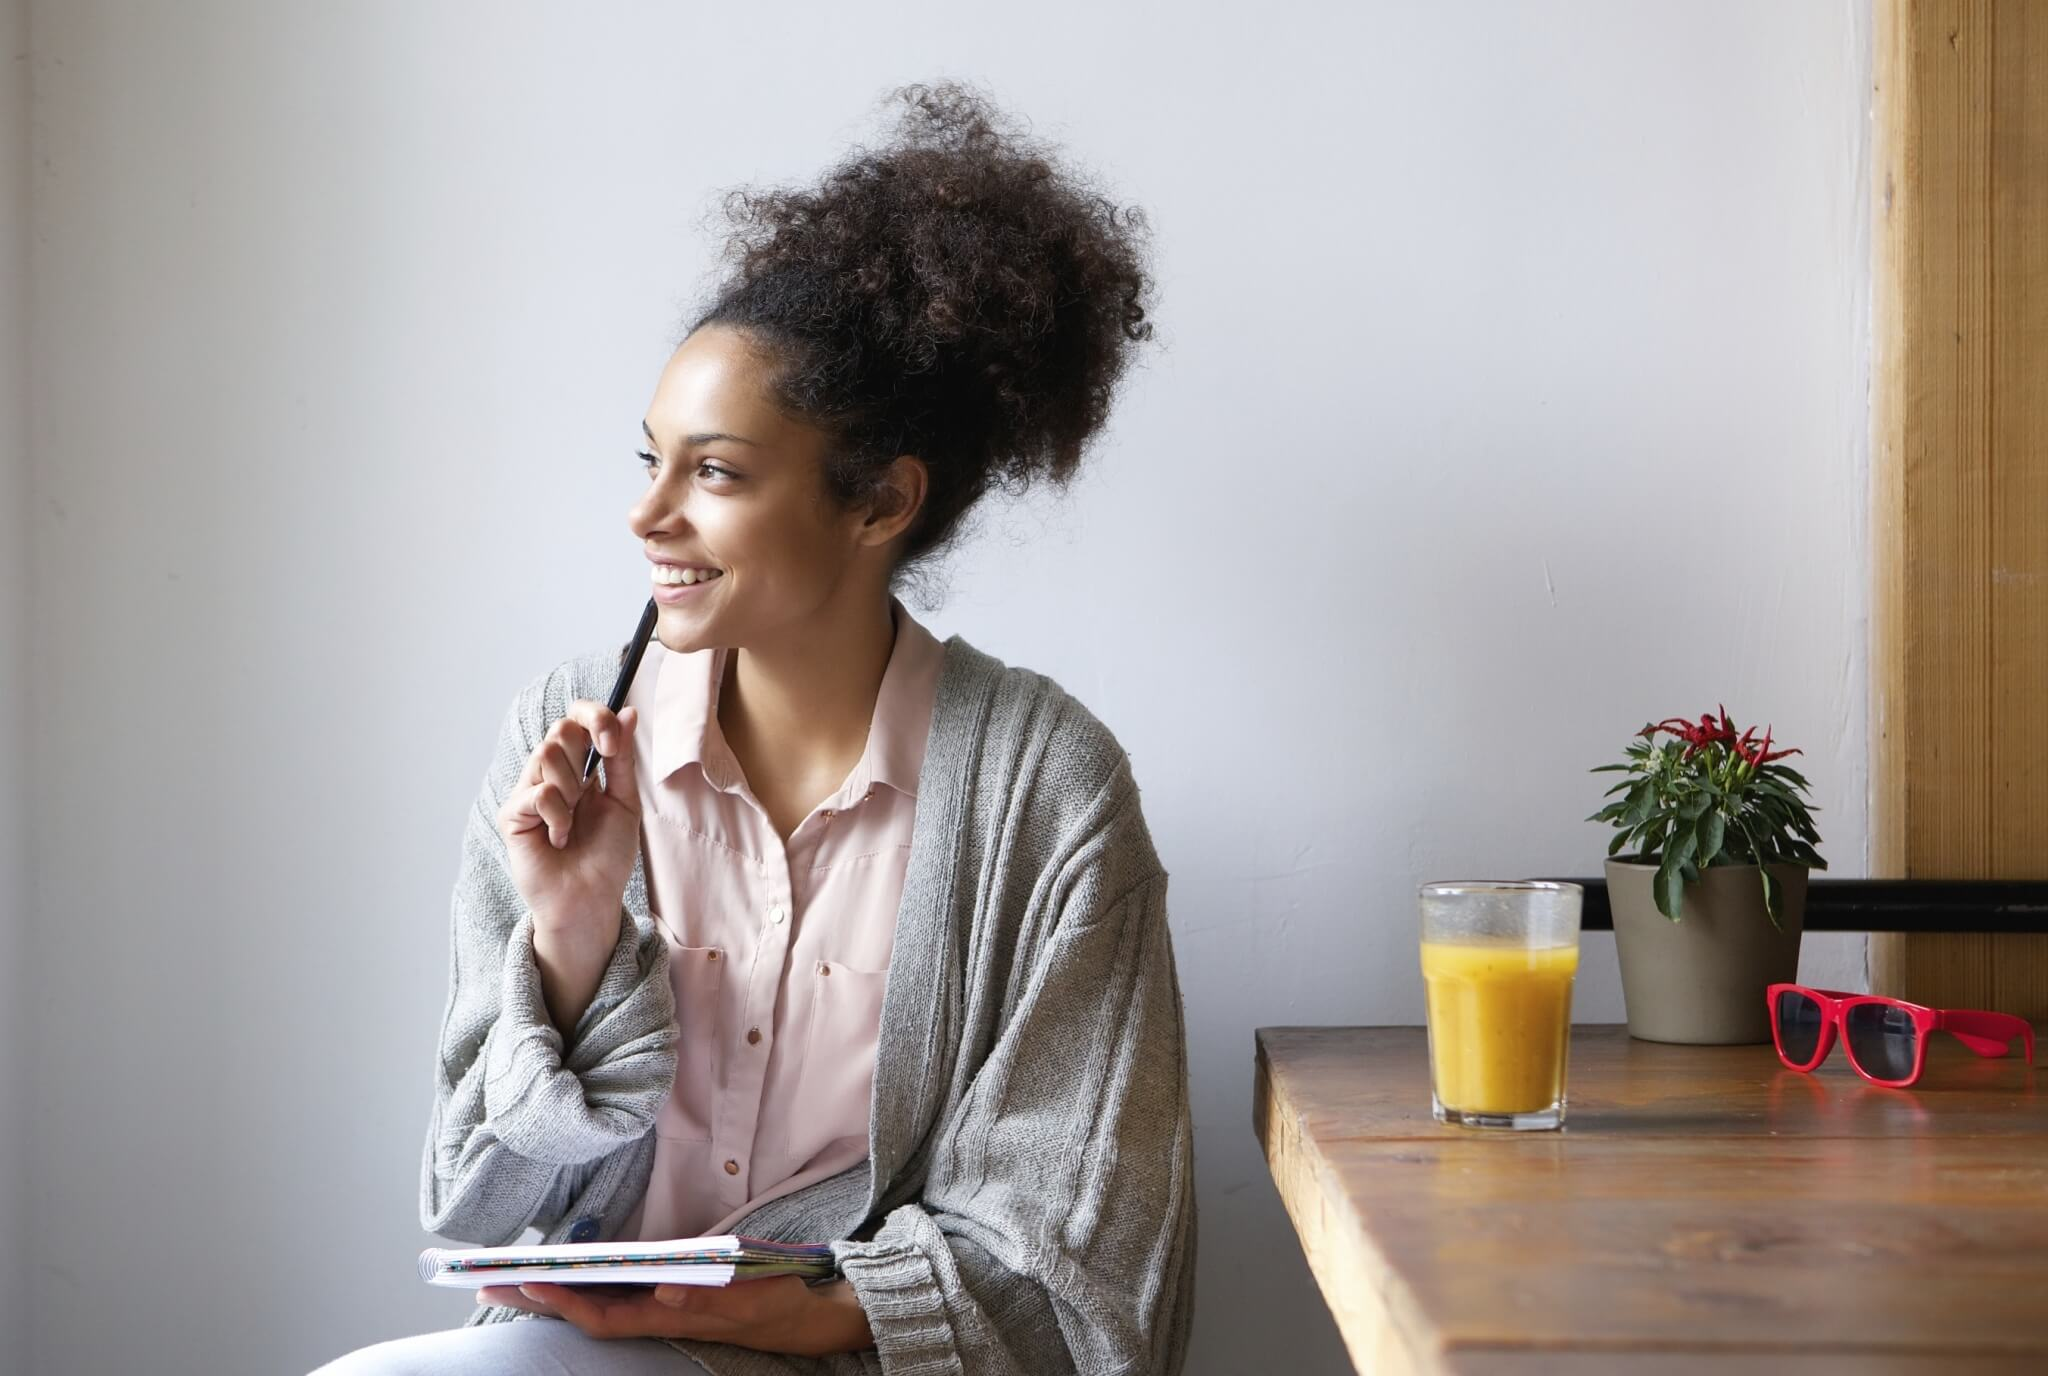 Happy-young-woman-sitting-at-home-with-pen-and-paper-000067132741_Large.jpg.jpeg